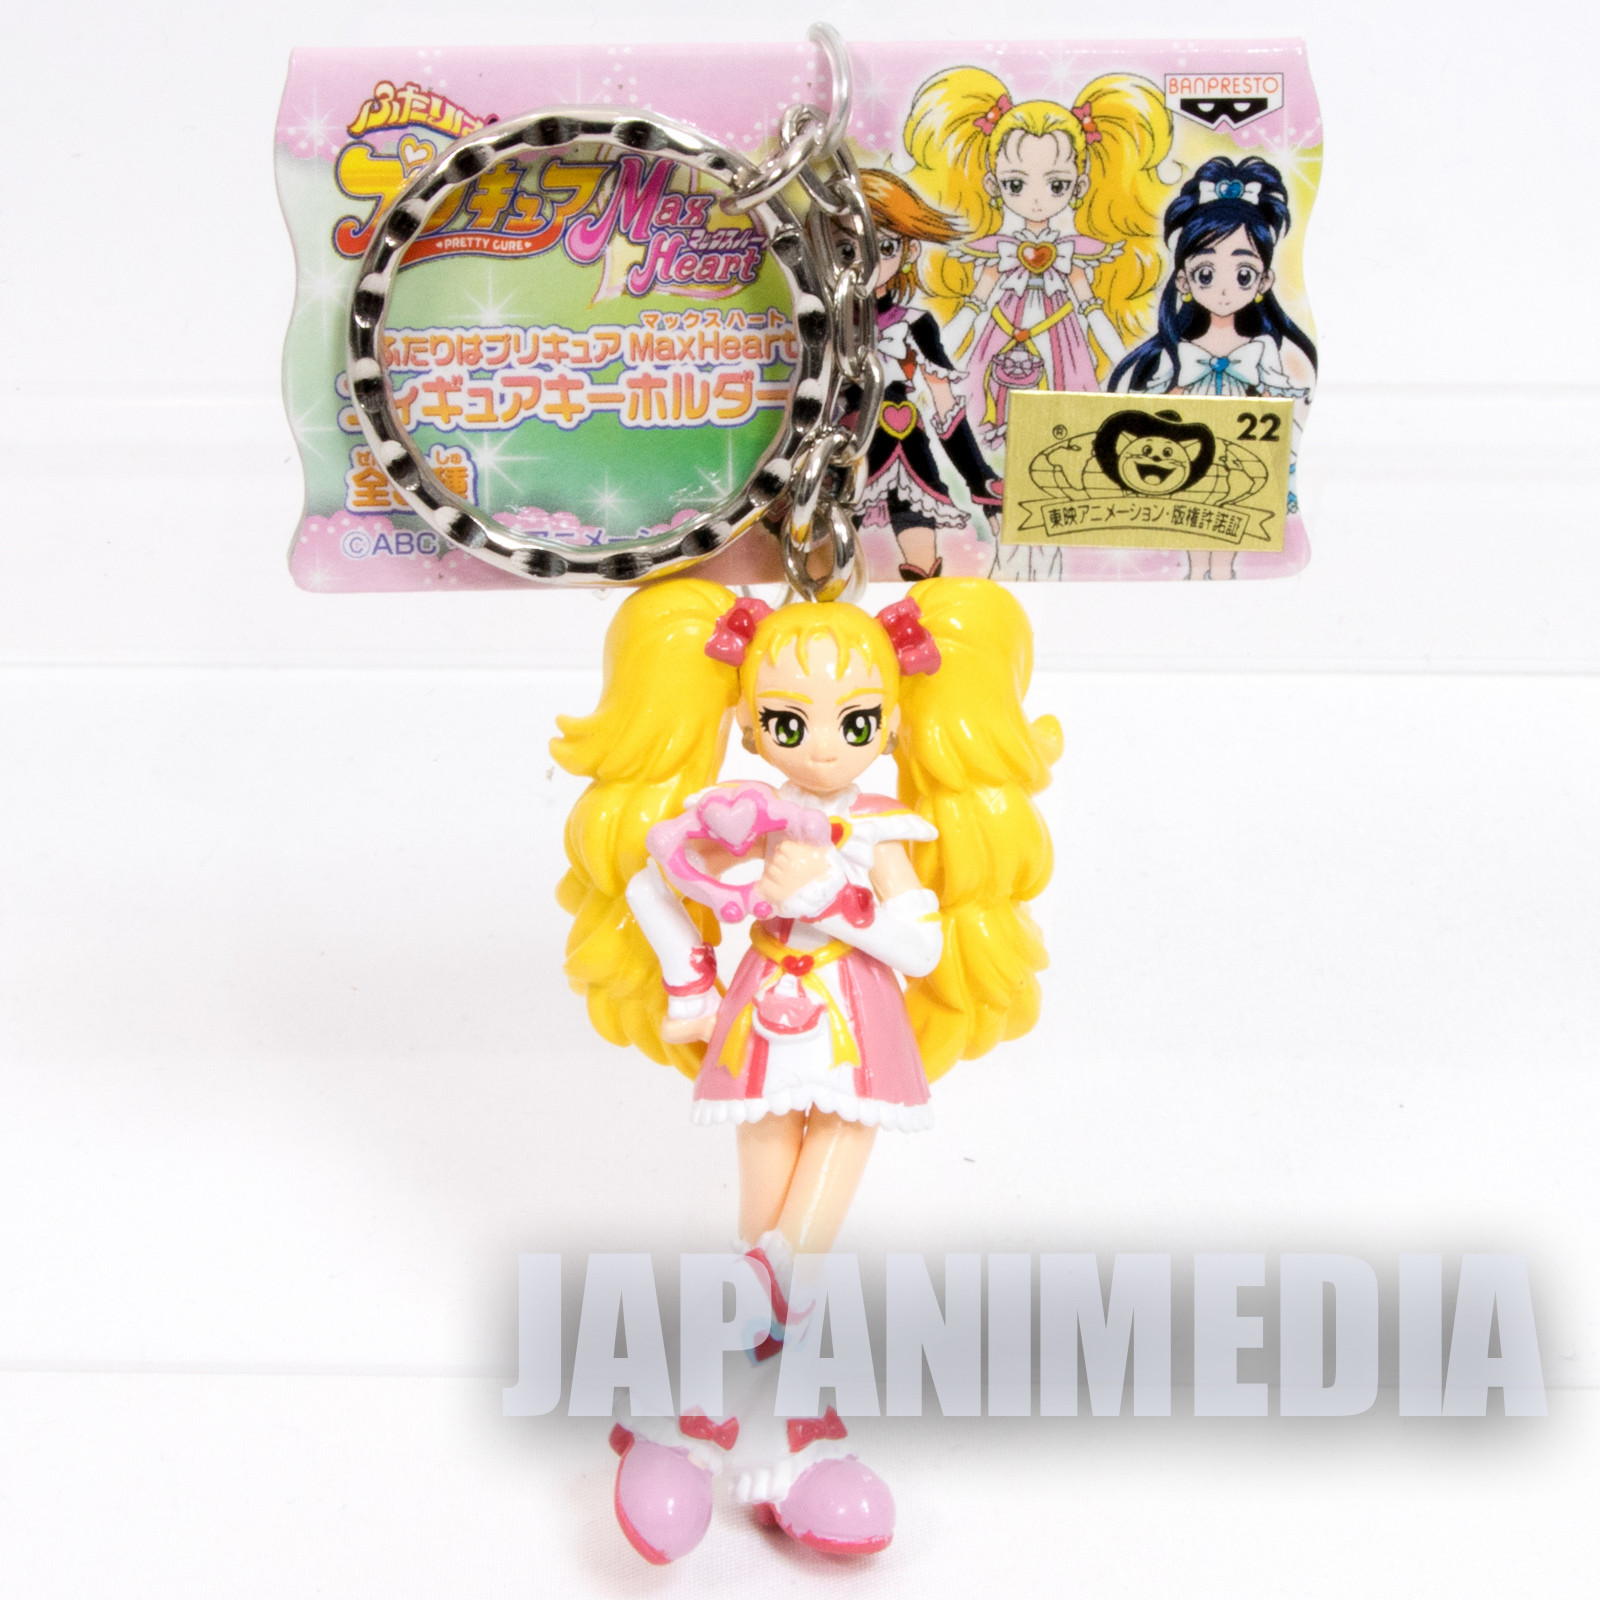 Futari wa Pretty Cure Shiny Luminous Figure Keychain JAPAN ANIME